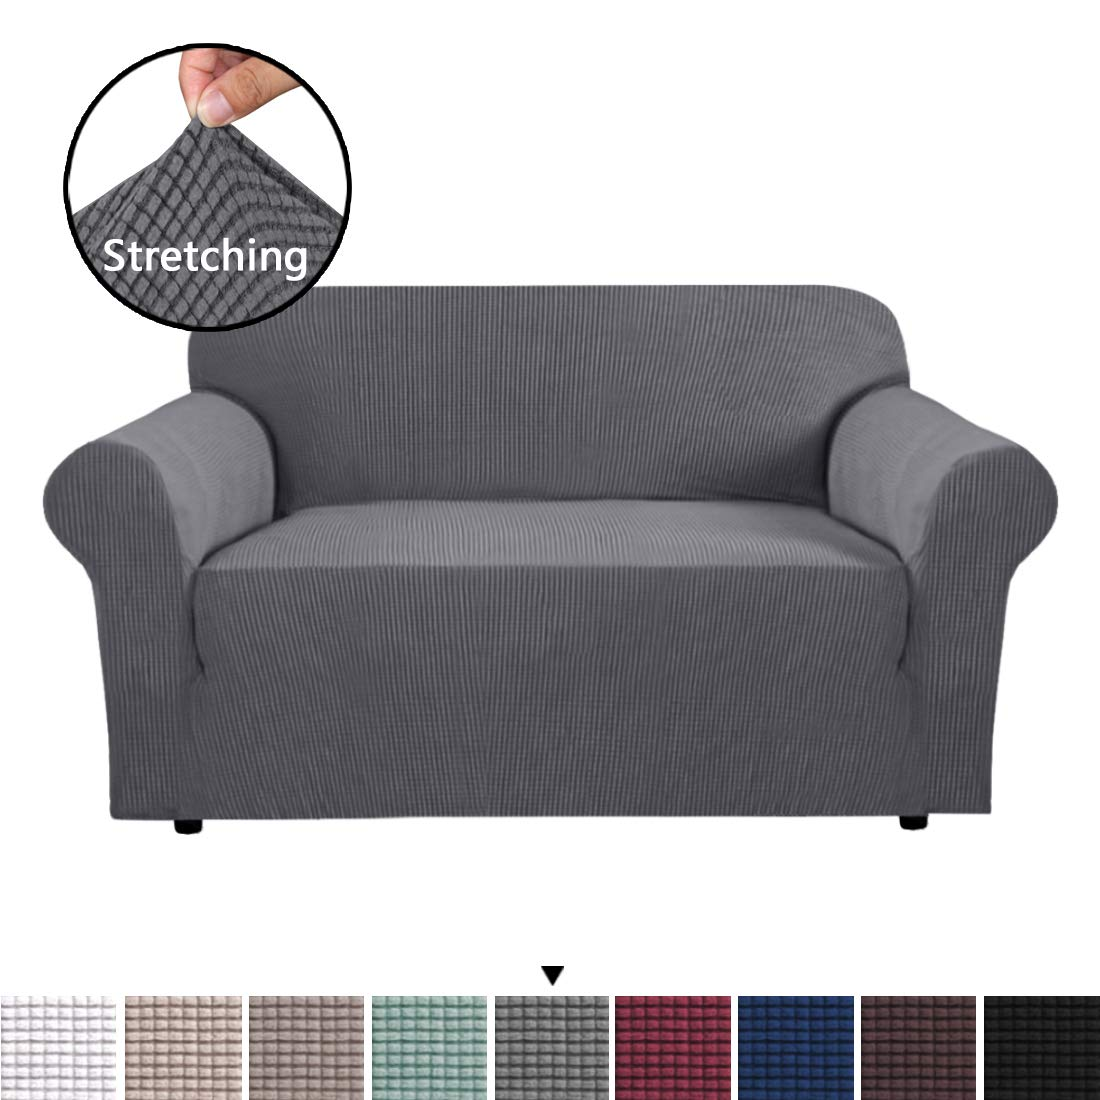 H.VERSAILTEX Sofa Cover 1 Piece Machine Washable Jacquard Spandex Sofa Slipcover Furniture Cover//Protector 2 Seater, Navy Soft Stretch Spandex Skid Resistance Loveseat Slipcovers 2 Cushions